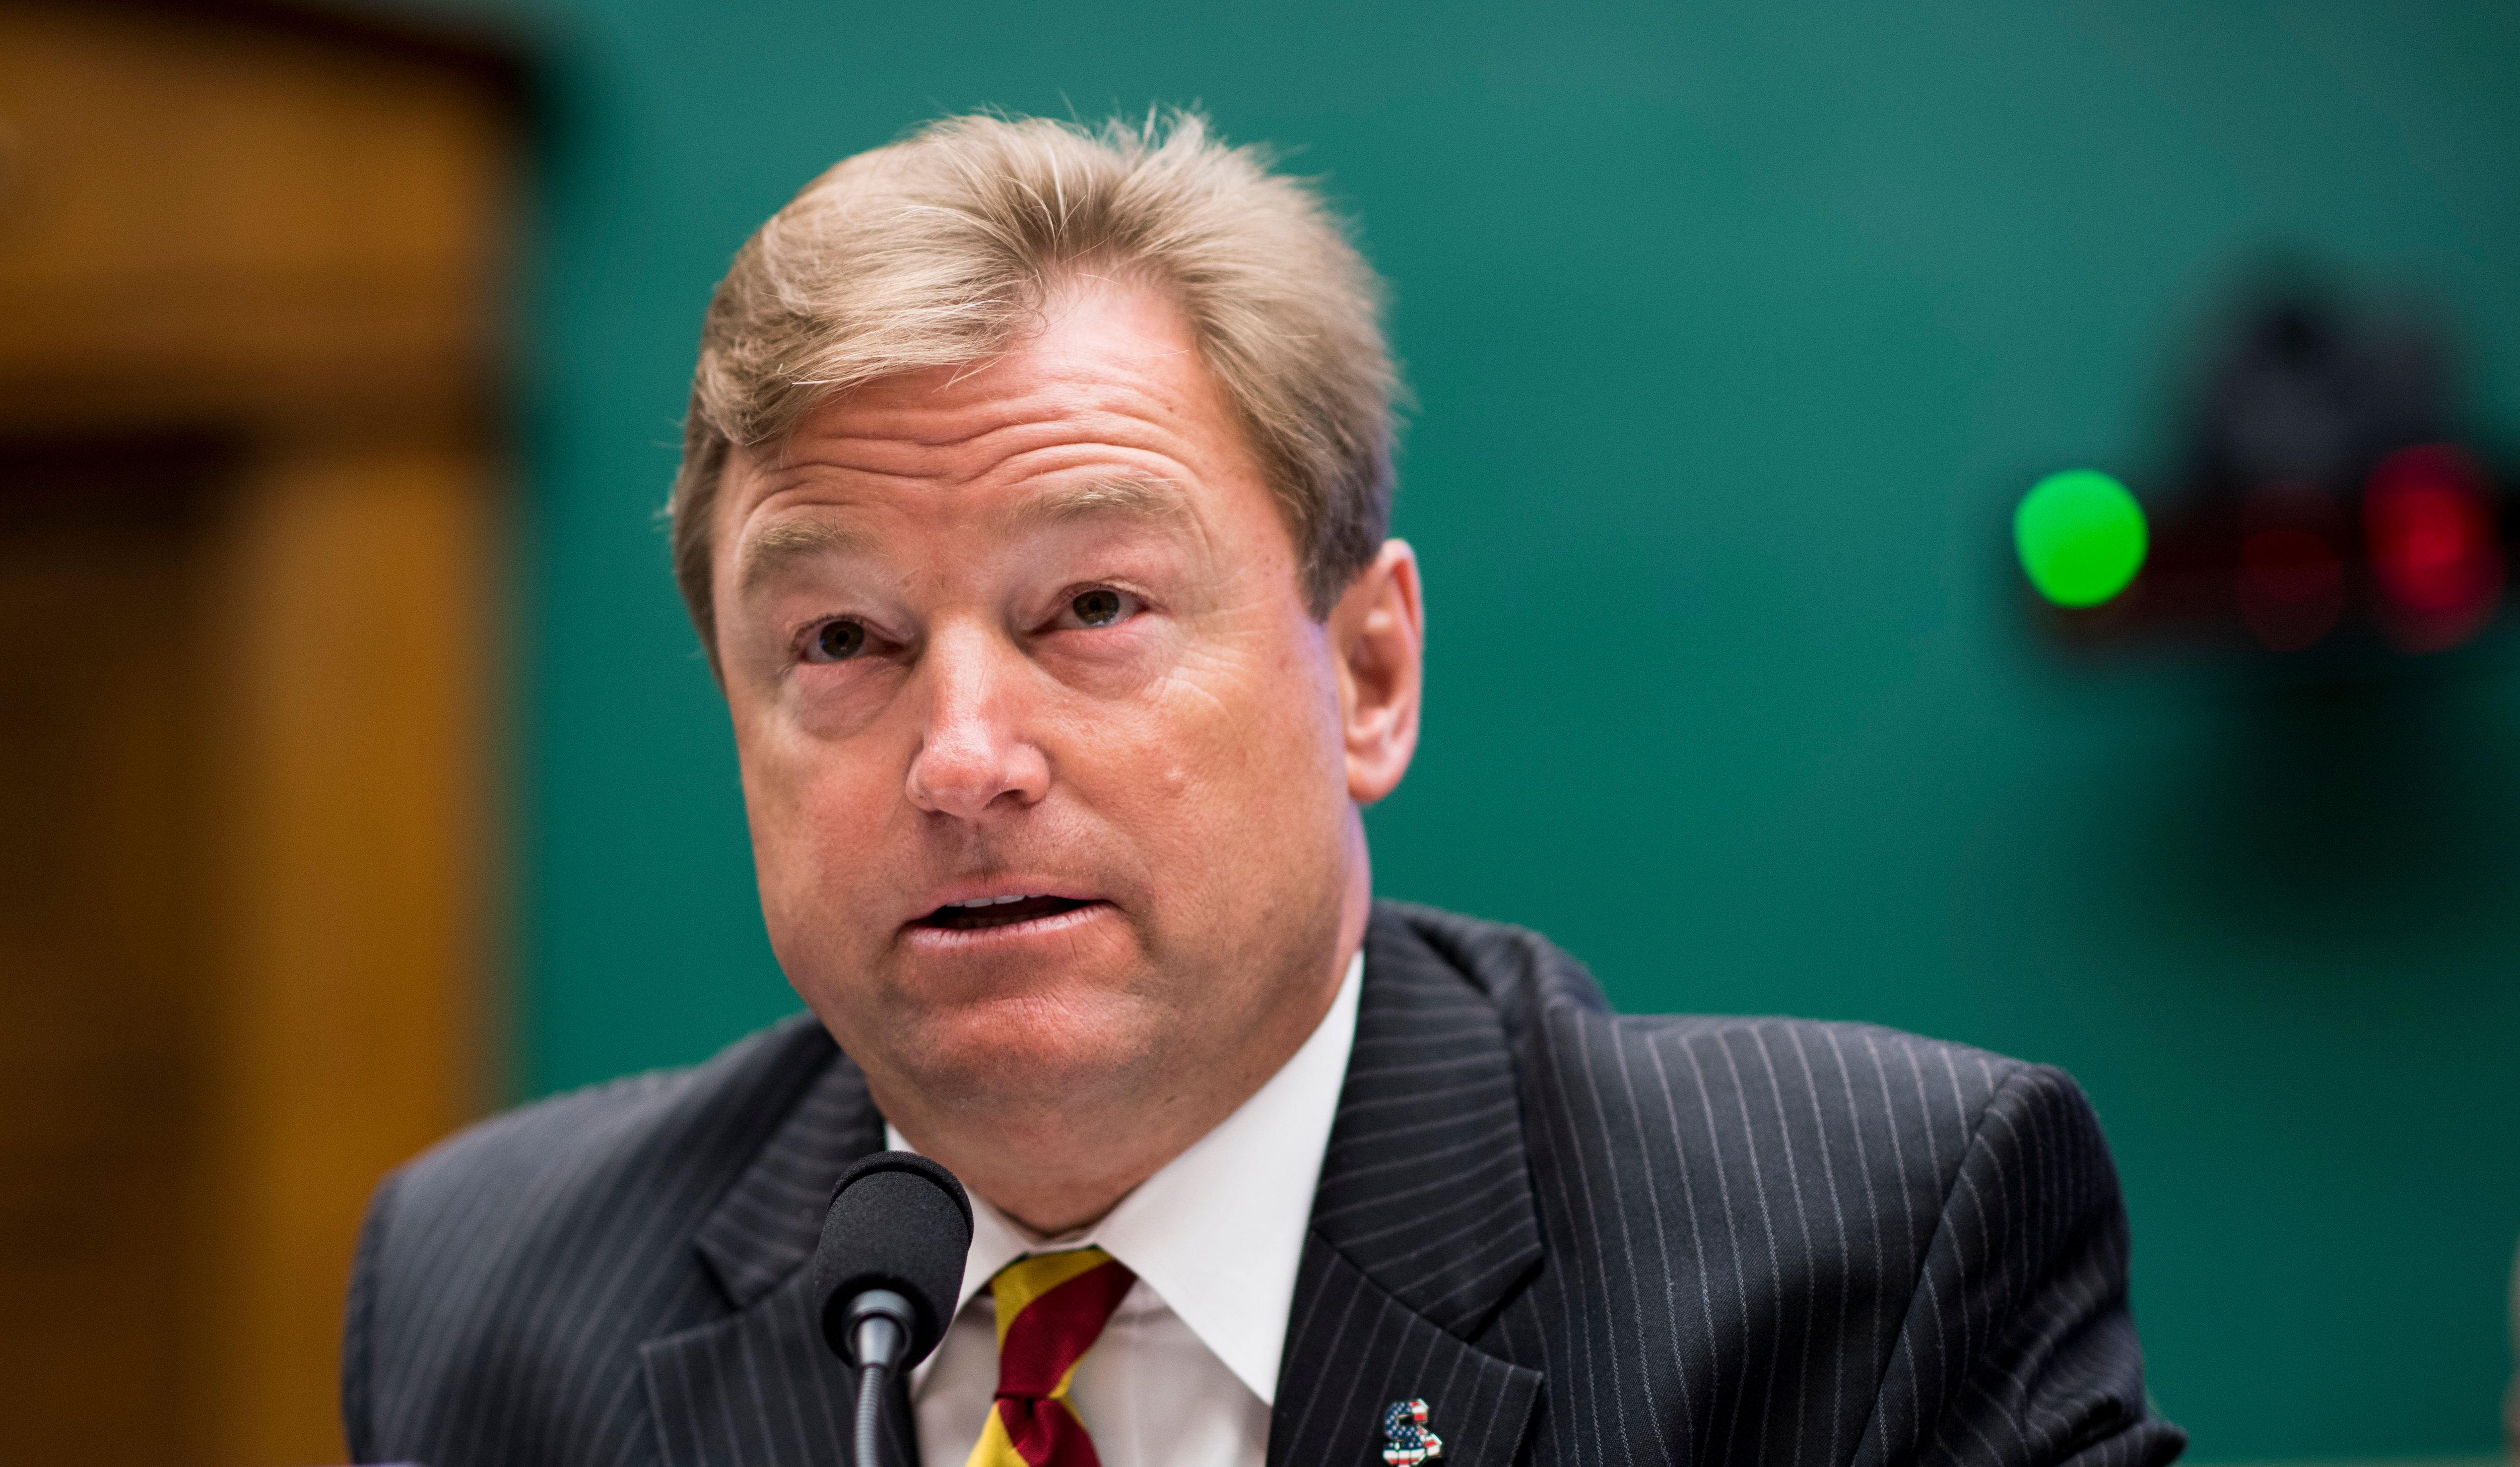 Dean Heller Calls Kavanaugh Allegation A 'Hiccup' To His Confirmation